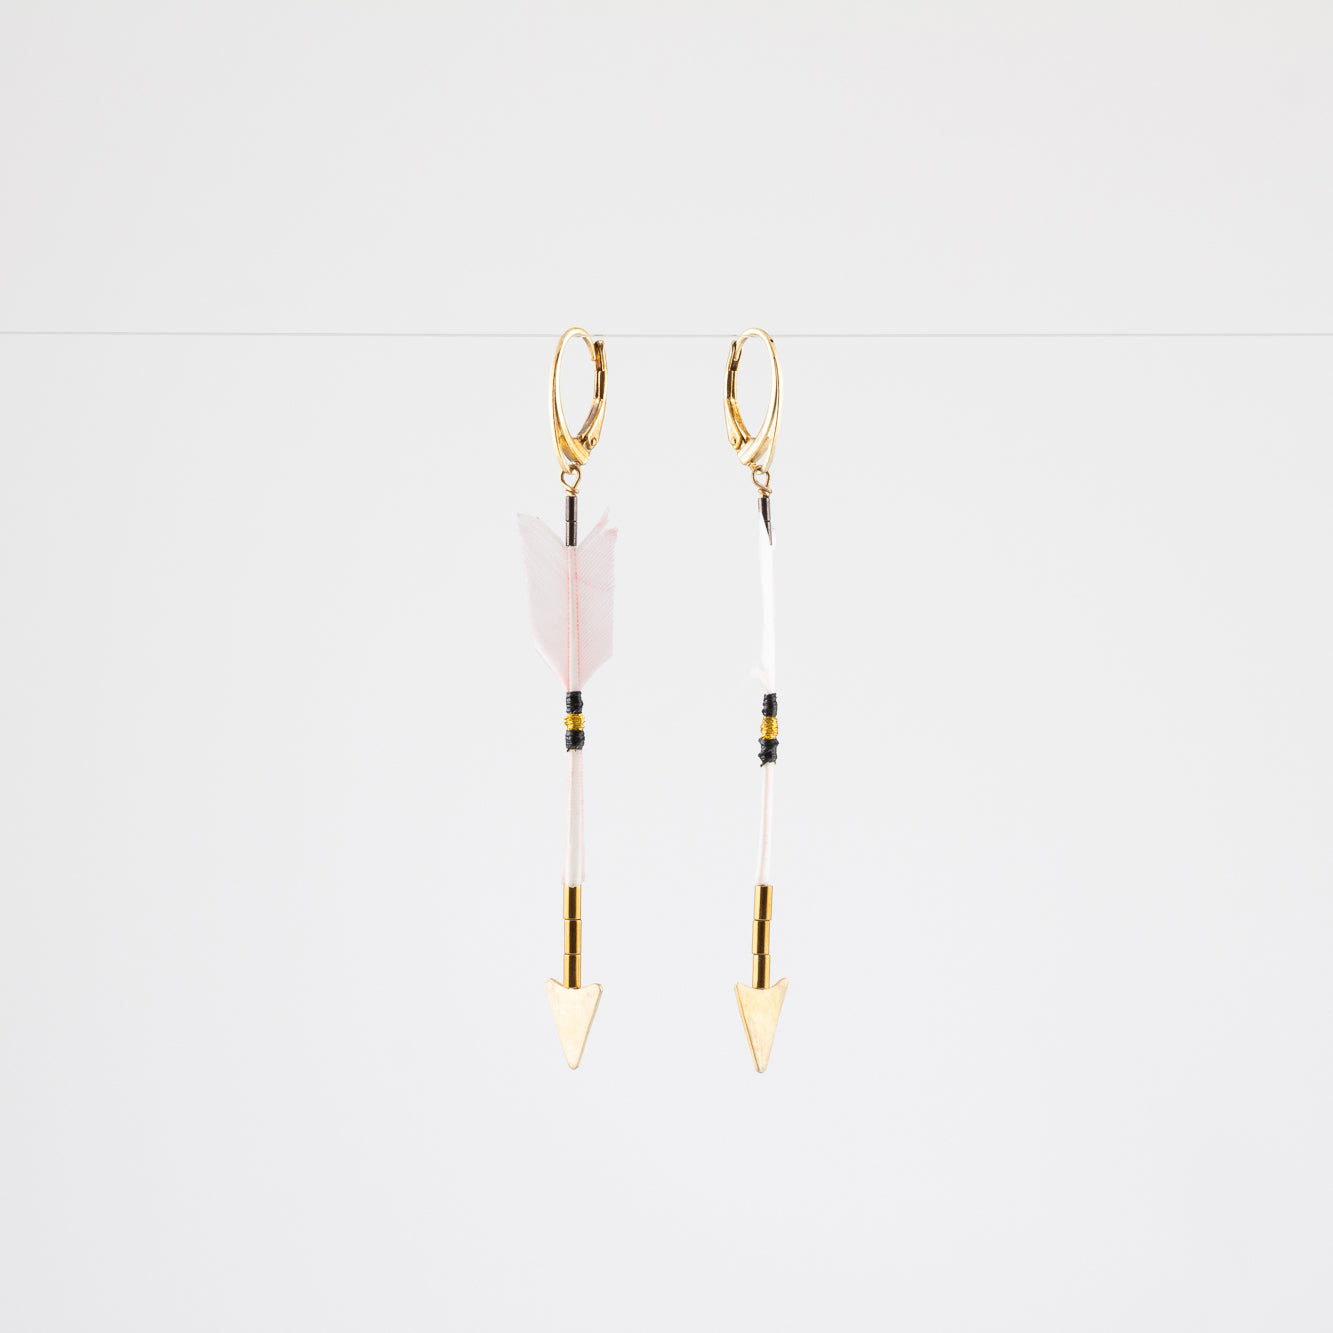 FEATHER ARROW EARRINGS // DESERT ROSE // VERMEIL